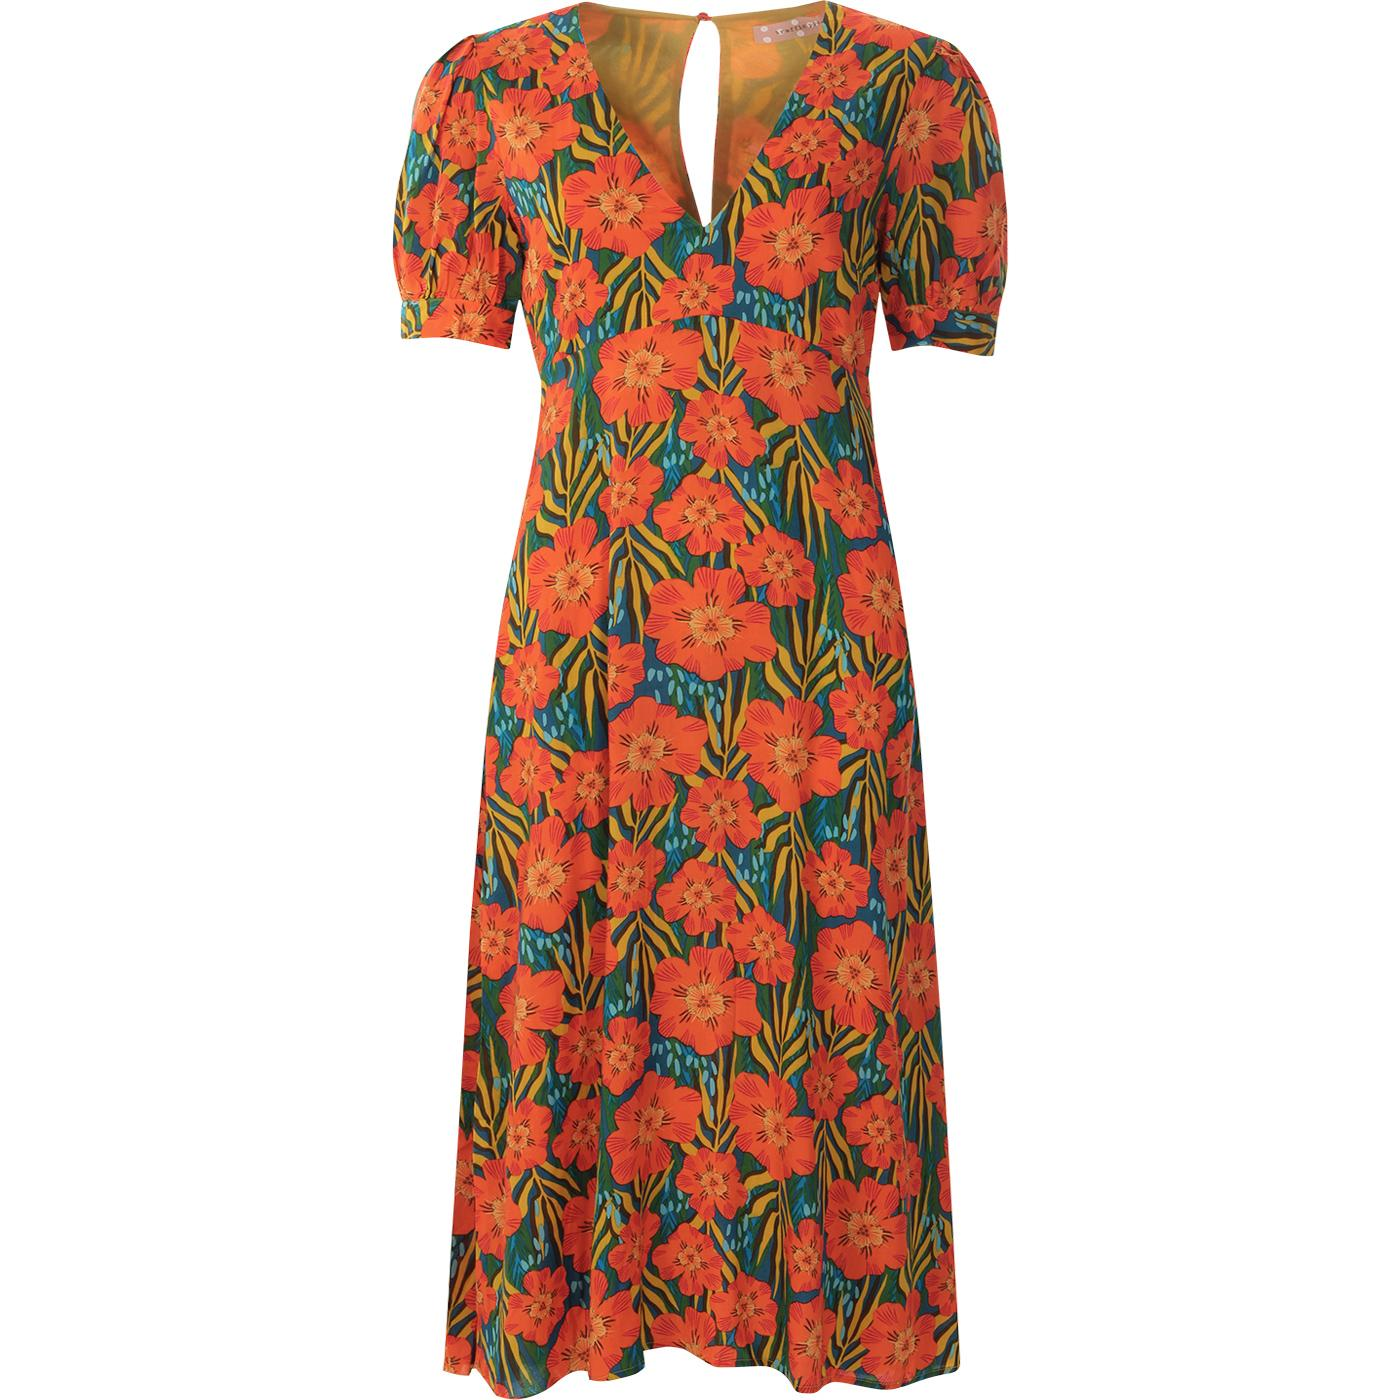 Mia TRAFFIC PEOPLE Vintage 70s Summer Flower Dress